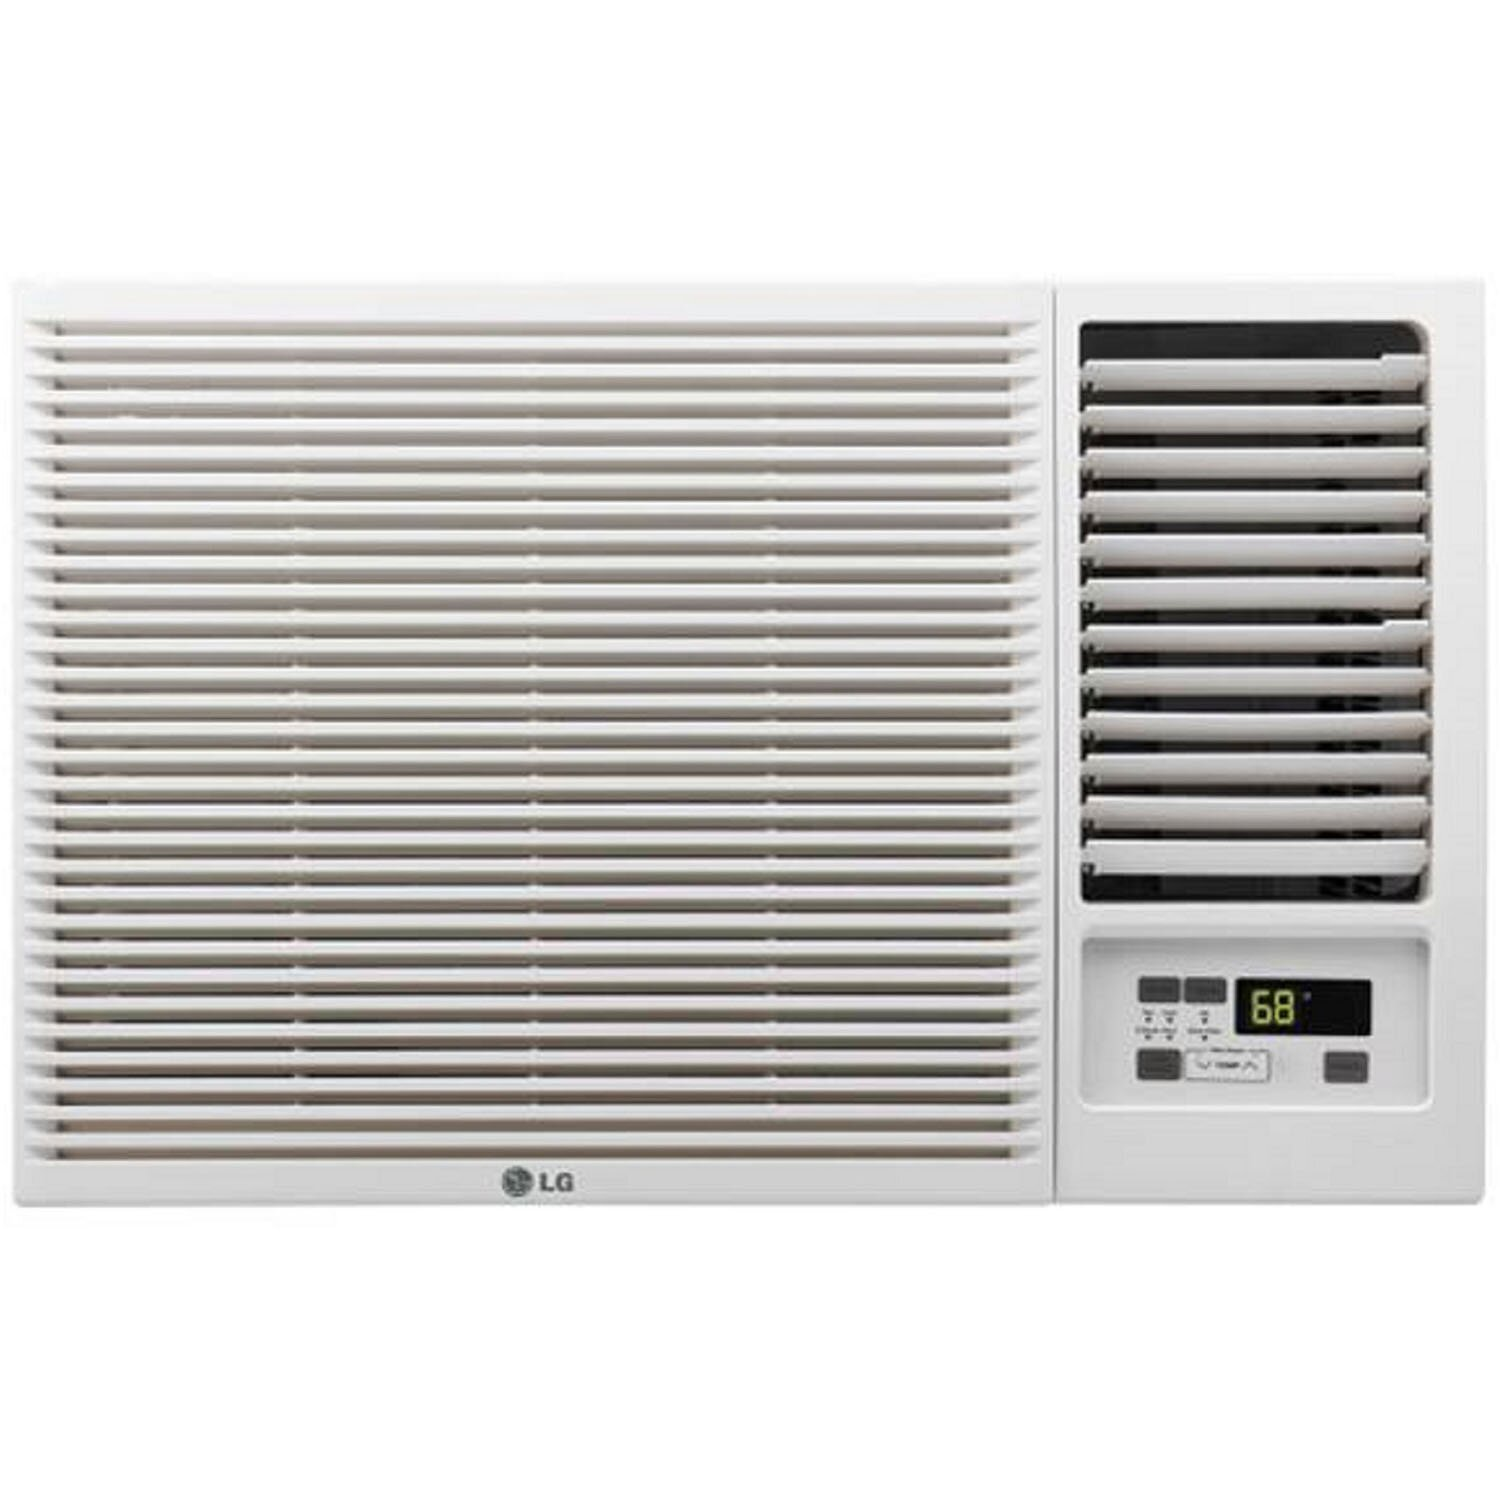 #595149 LG 12000 BTU Window Air Conditioner Wayfair Reliable 14808 Window Air Conditioner Parts List wallpaper with 1500x1500 px on helpvideos.info - Air Conditioners, Air Coolers and more